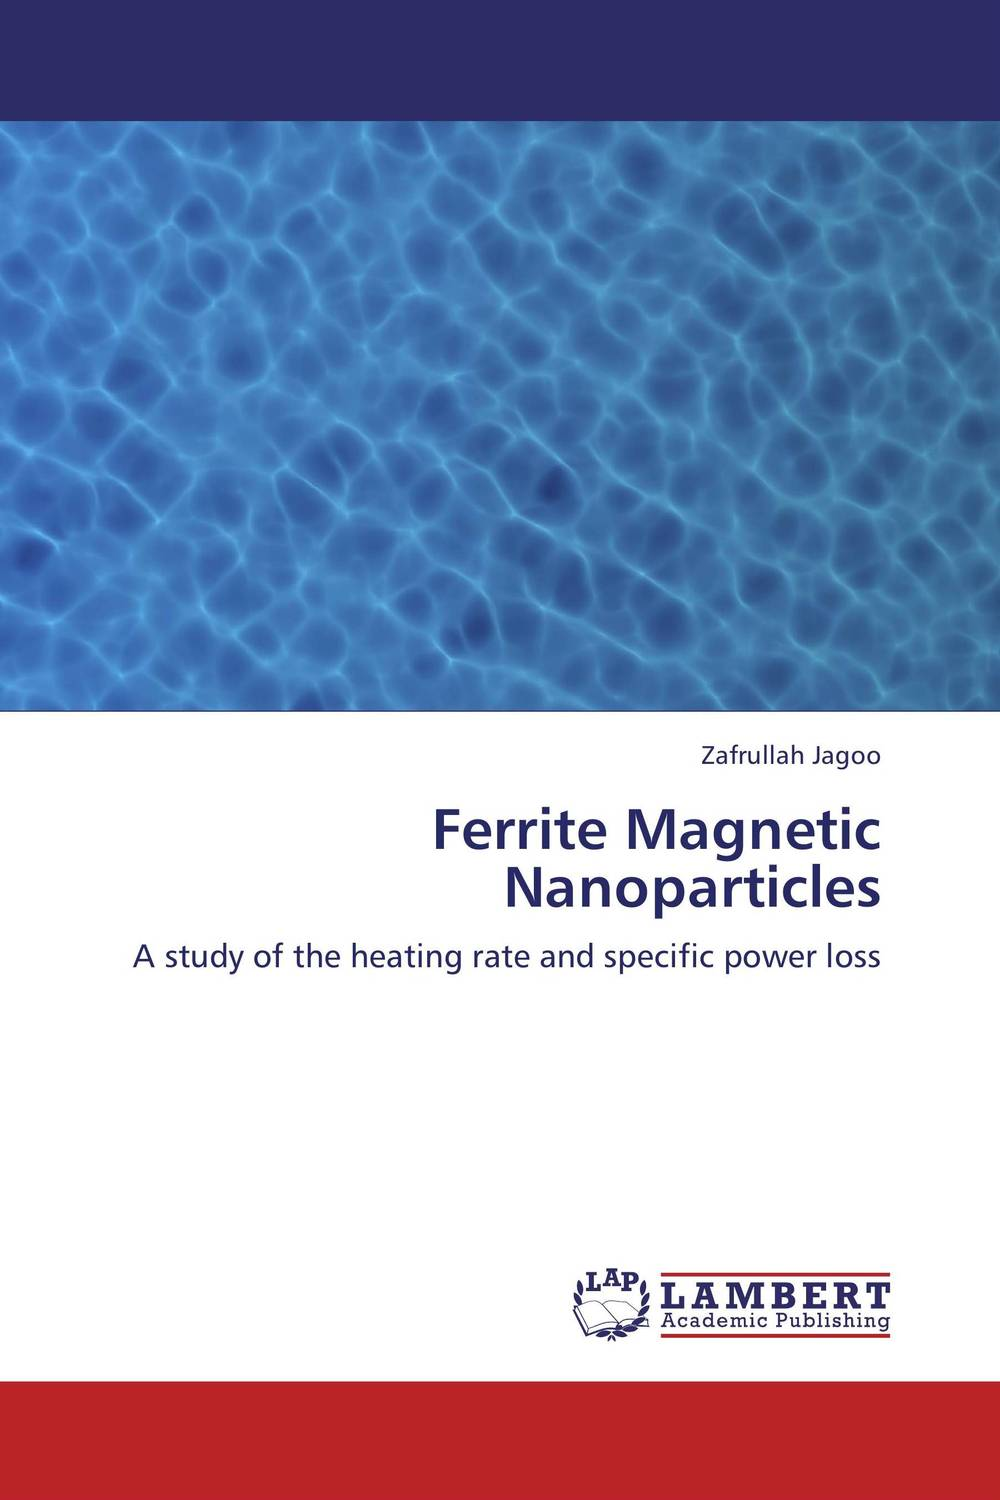 Ferrite Magnetic Nanoparticles short path distillation kit with 5l heating mantle with magnetic stirrer with cold trap with condenser and receiving flask